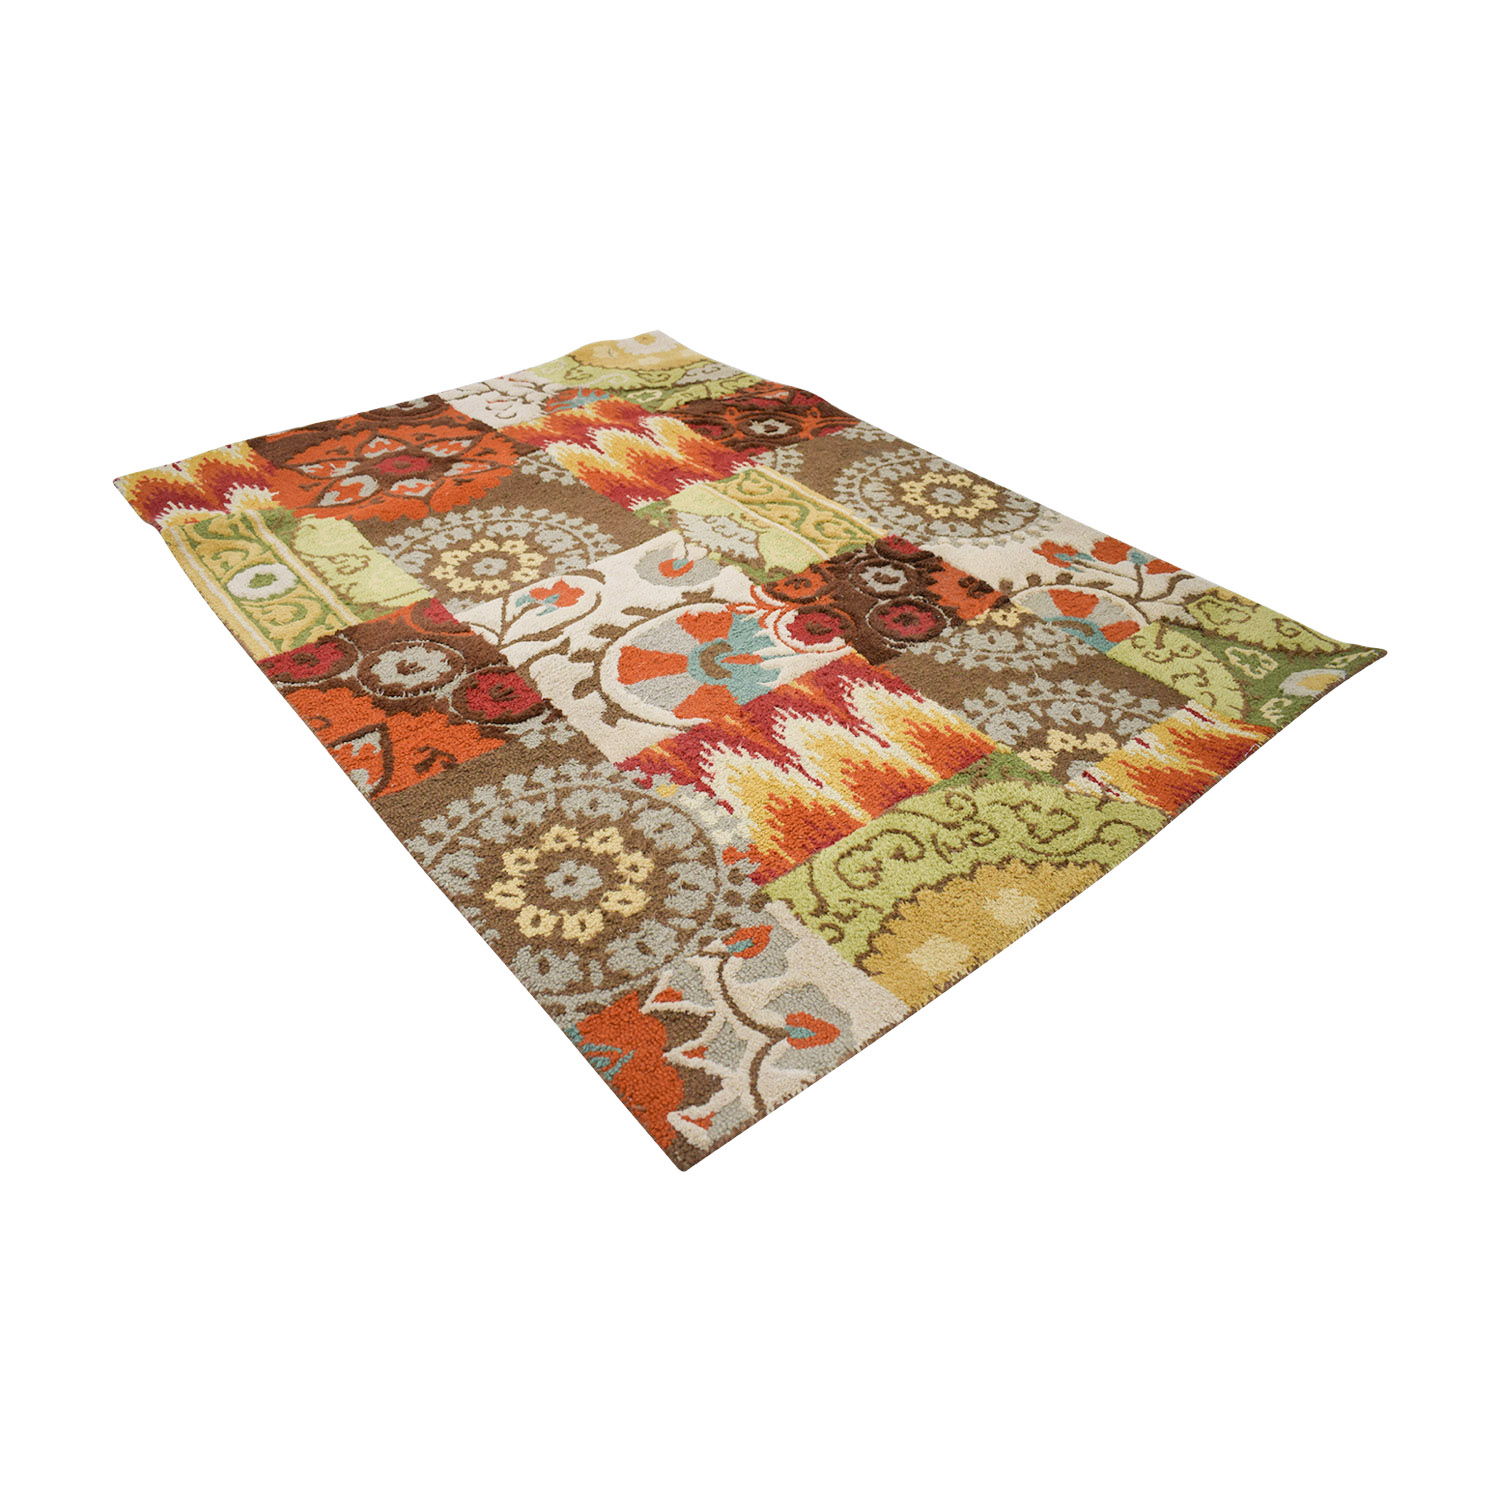 Threshold Threshold Patchwork Multi-Colored Rug second hand